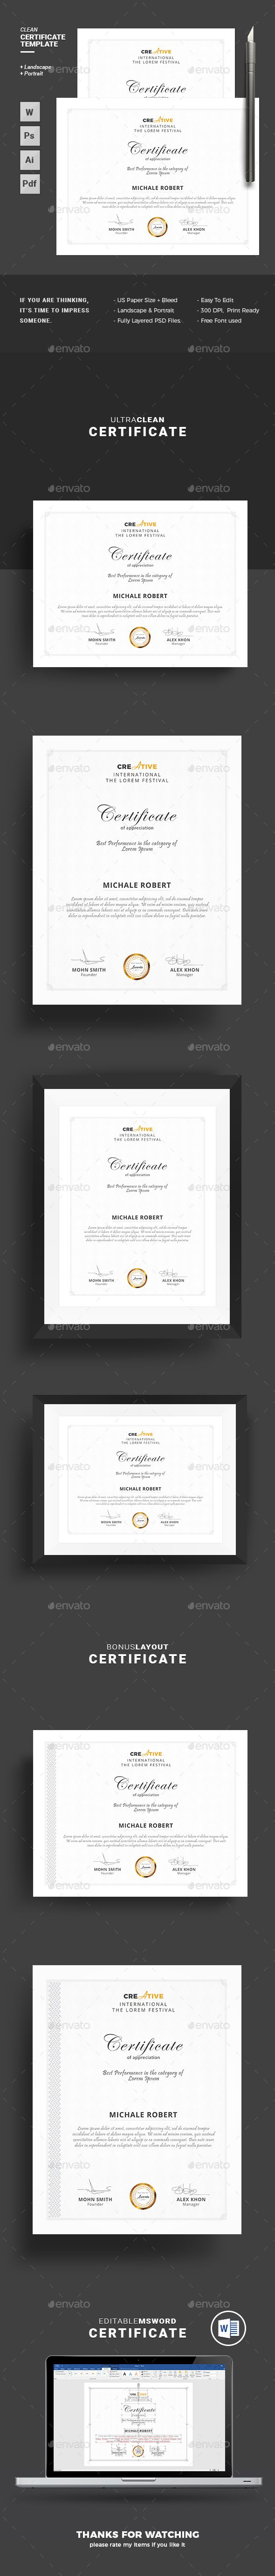 Certificate Corporate & Modern Certificate Template. Use this Certificate Template in your business, company or institution in completion of any course, training ,degree or job. Also you can use this Multipurpose Certificate Template as award giving certificate, certificate of excellence, certificate of appreciation, certificate of achievement, certificate of recognition or related purpose.